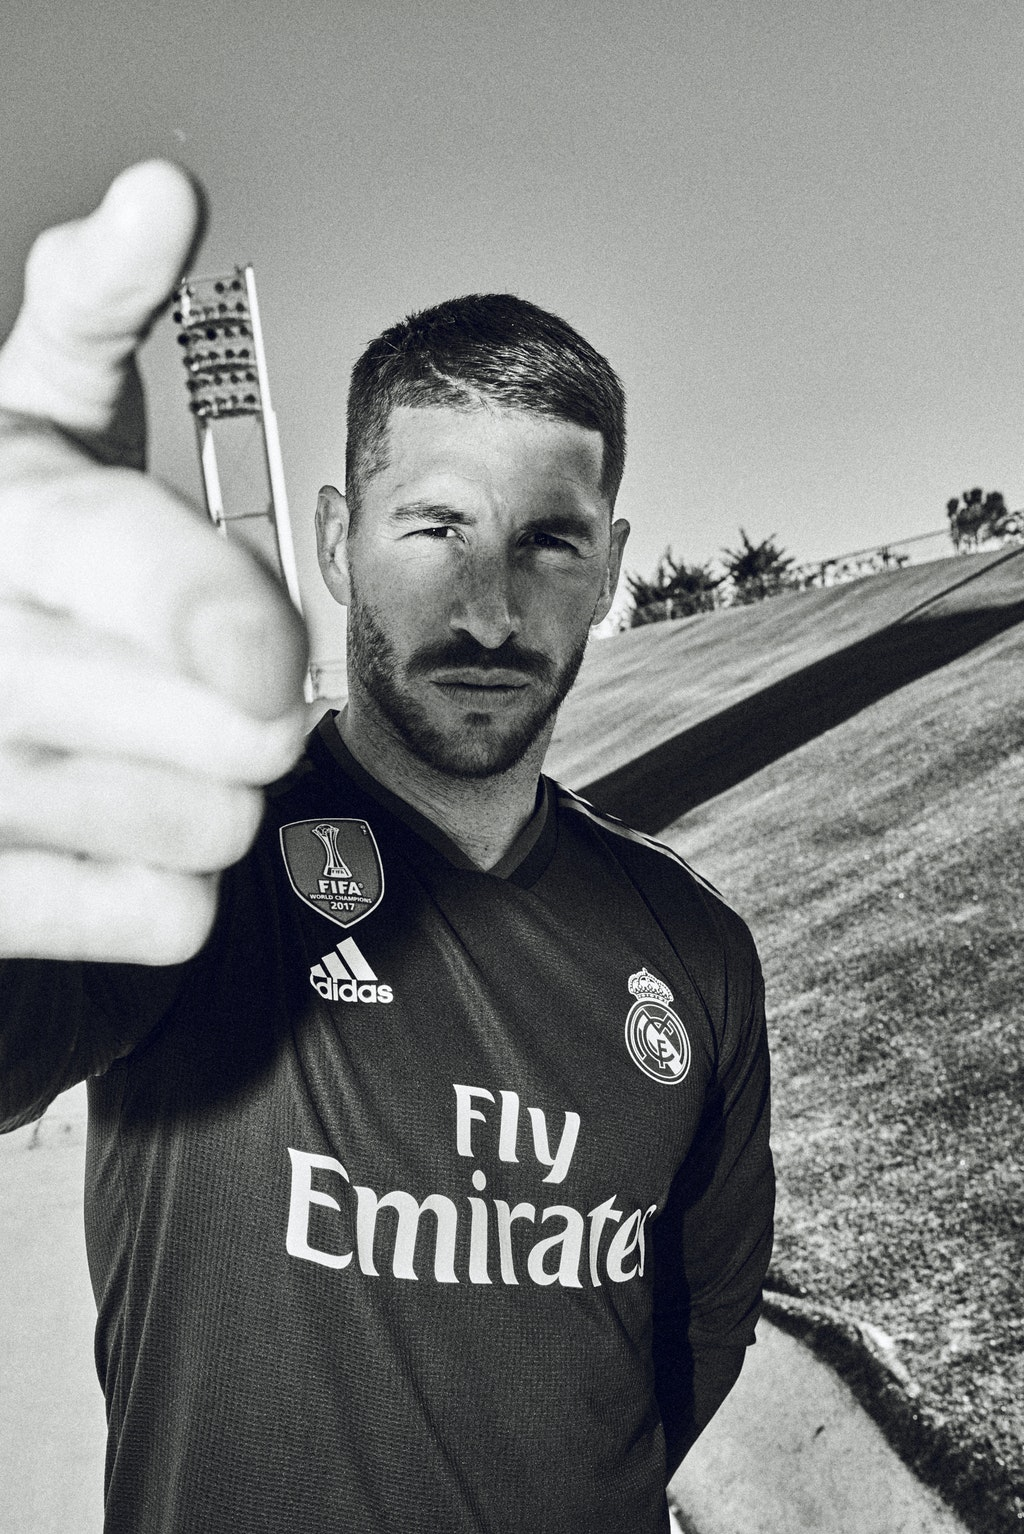 Adidas Football x Real Madrid - Sergio Ramos